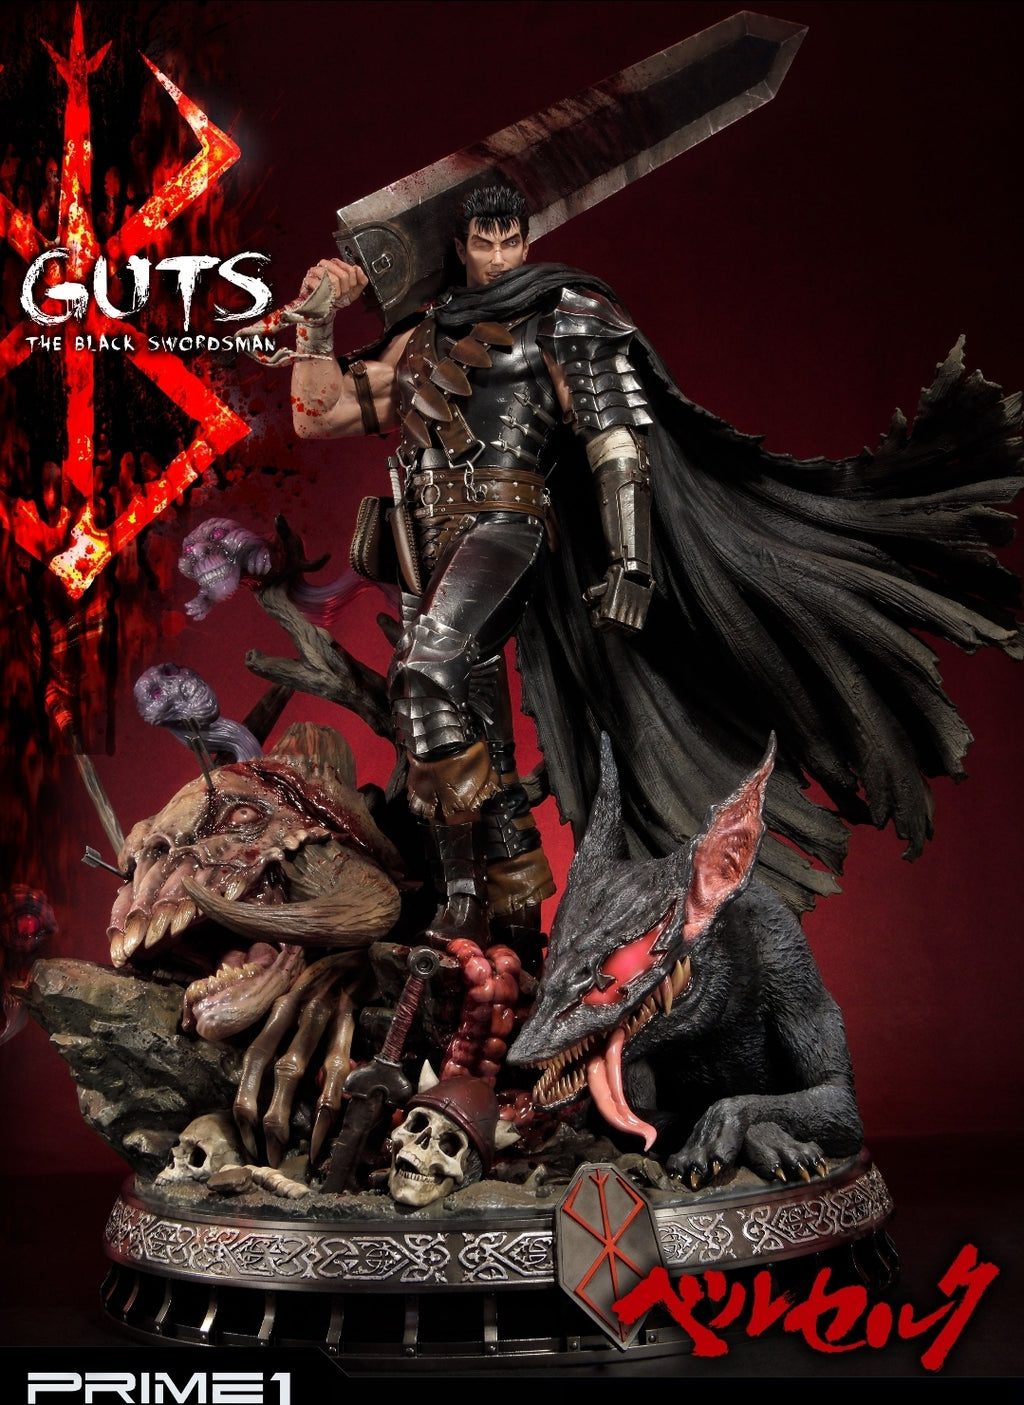 Guts the Black Swordsman